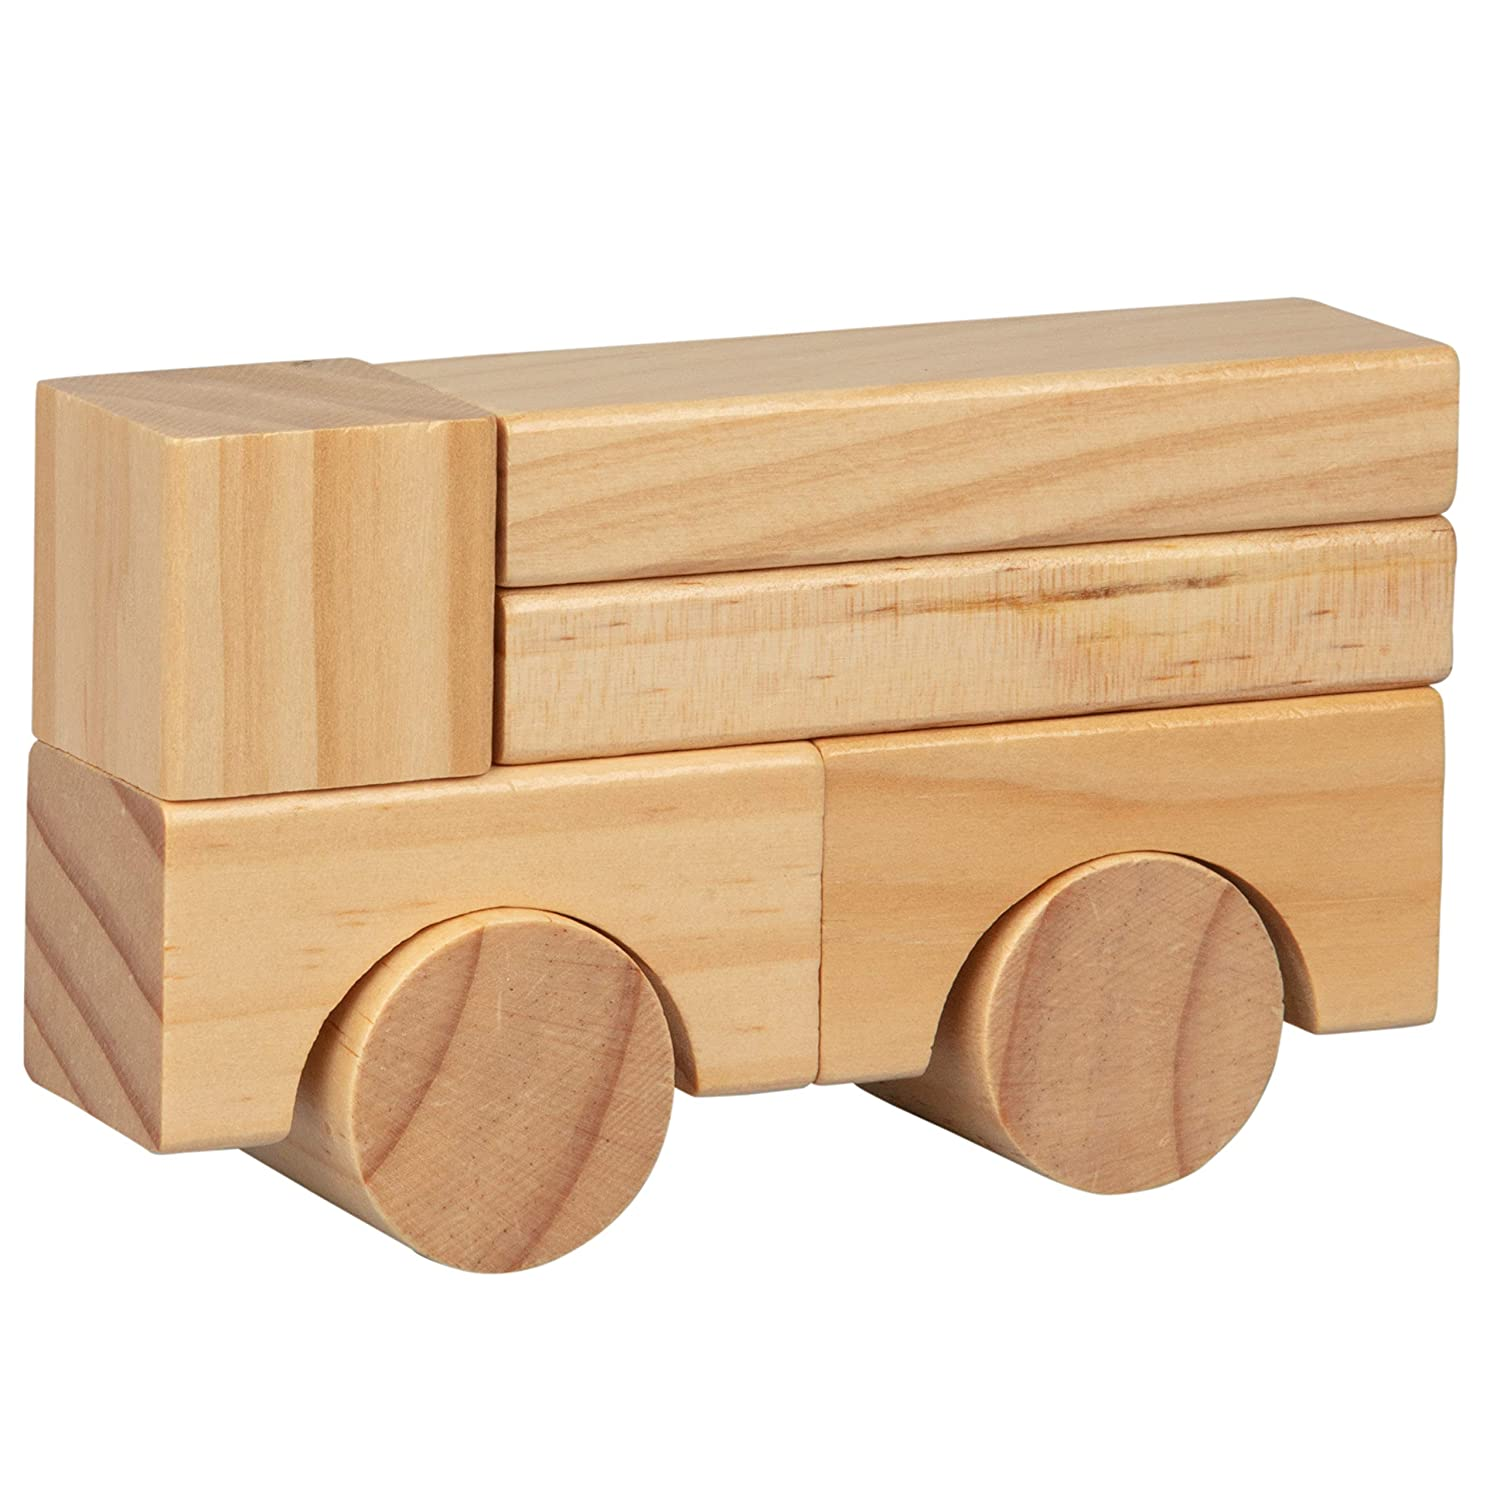 Wooden Blocks Natural Colored - 100/% Real Wood Right Track Toys 100 Pc Wood Building Block Set with Carrying Bag and Container